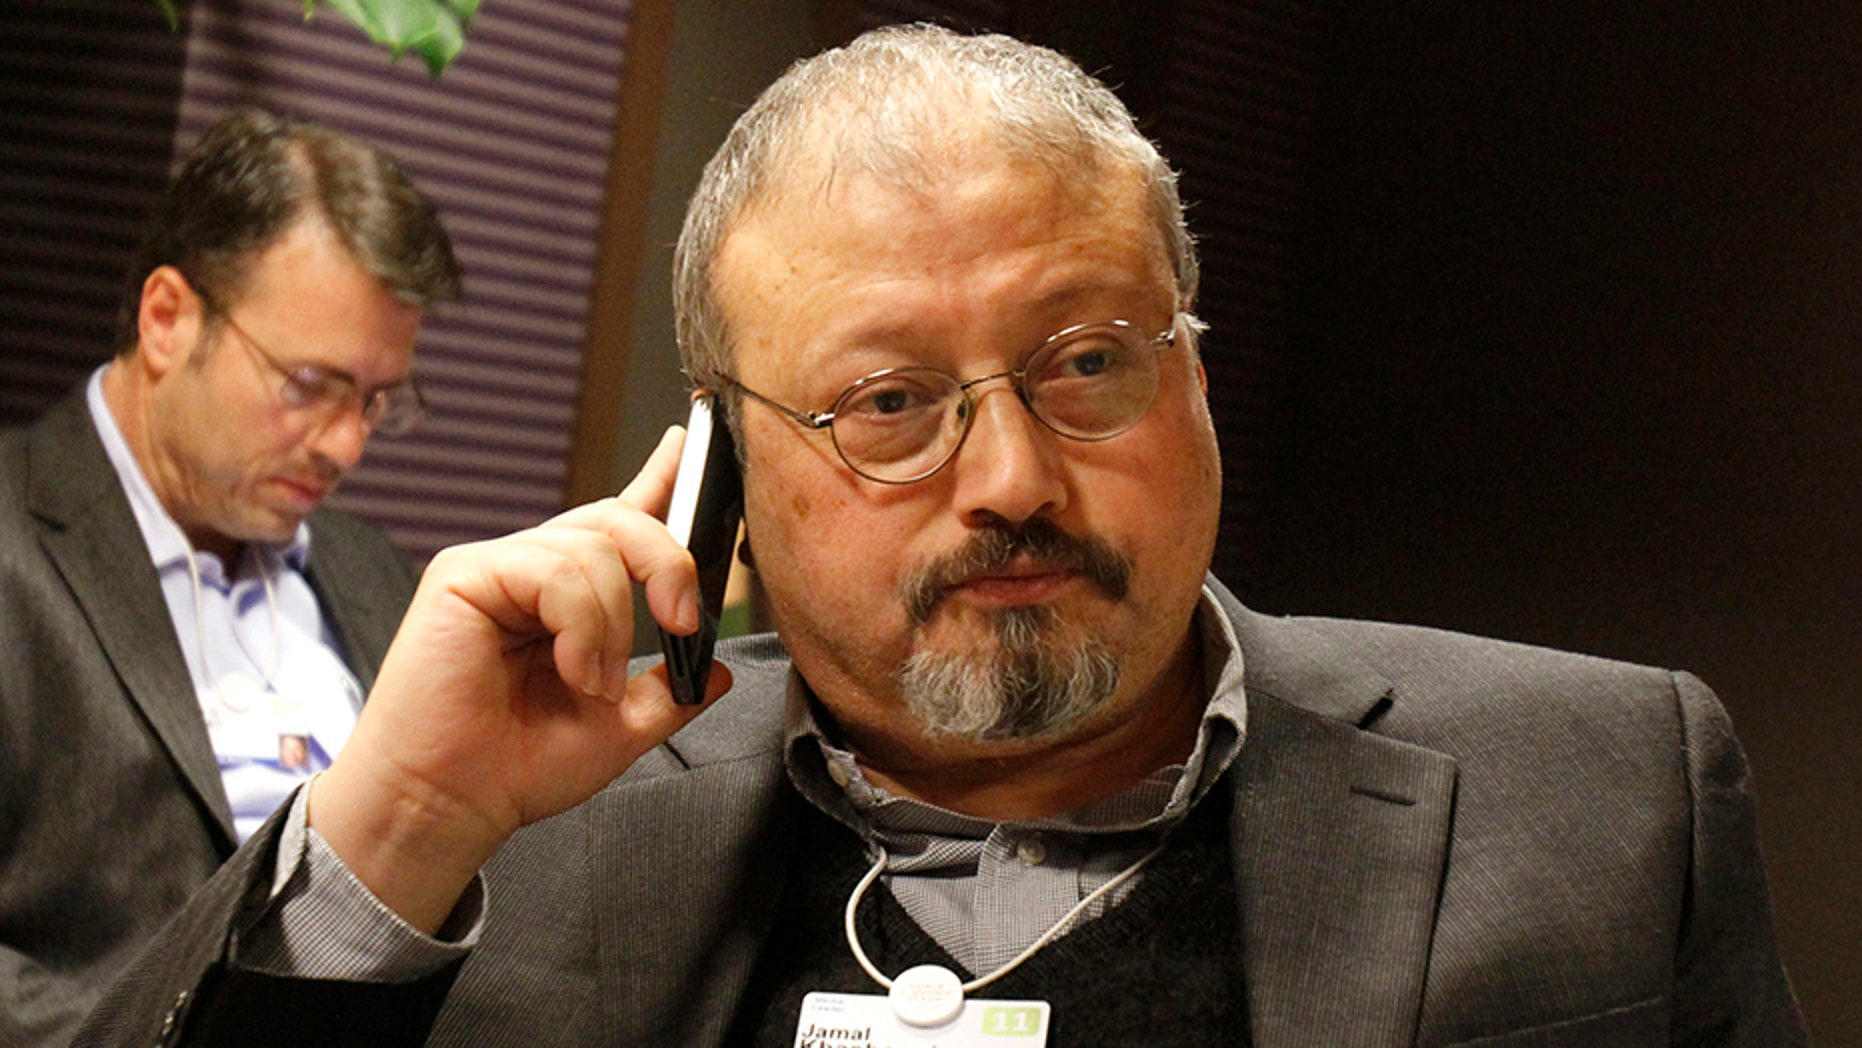 CCTV shows missing Saudi dissident Jamal Khashoggi entering consulate